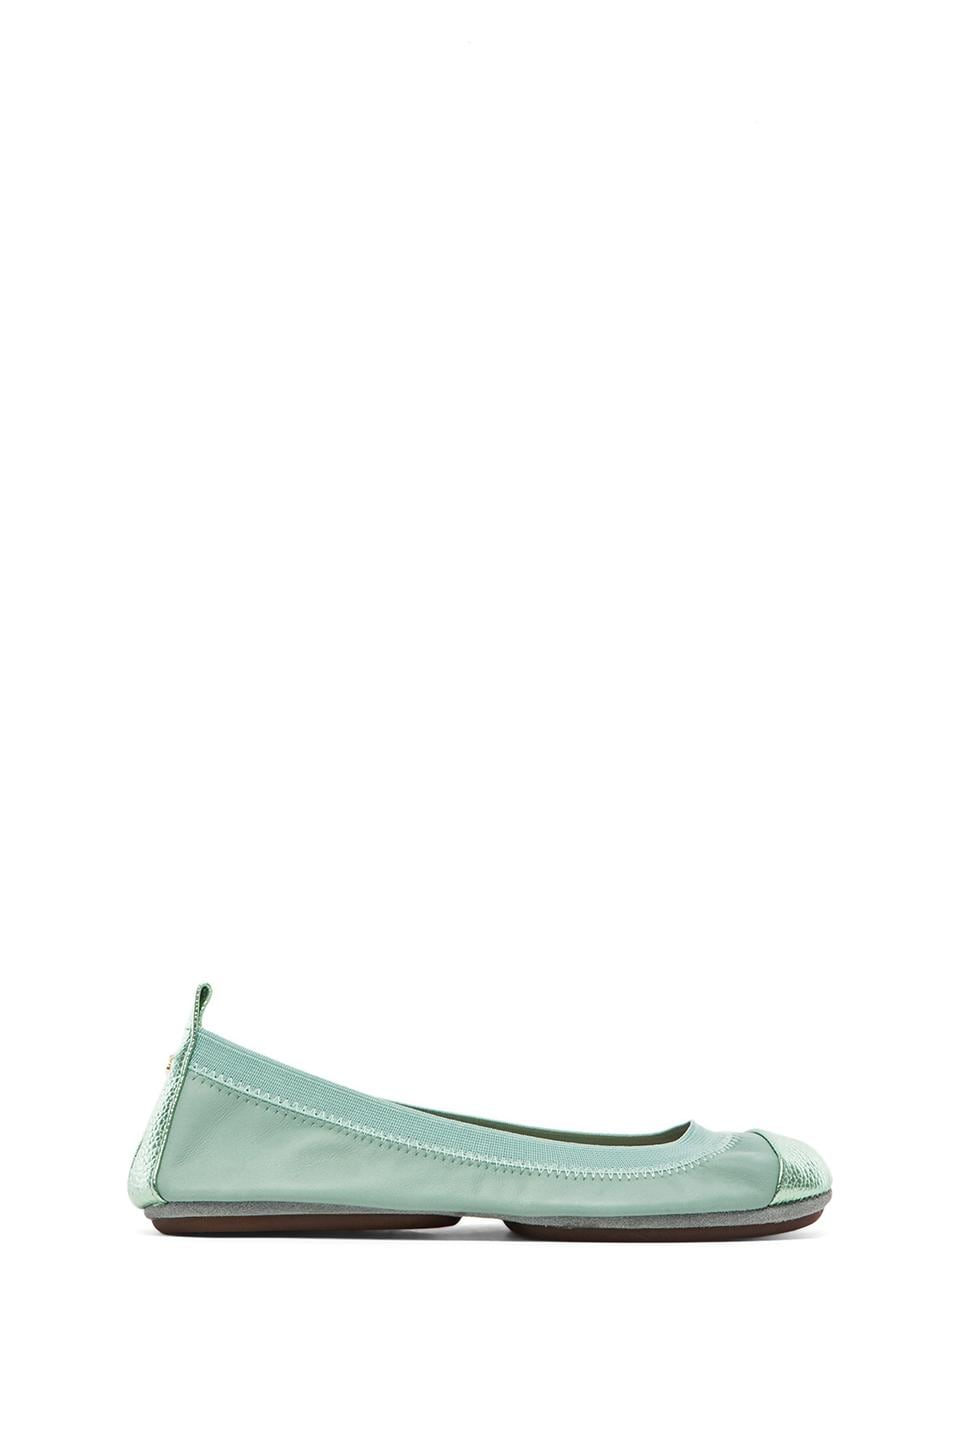 Yosi Samra Samantha Soft Leather Fold Up Flat in Seafoam